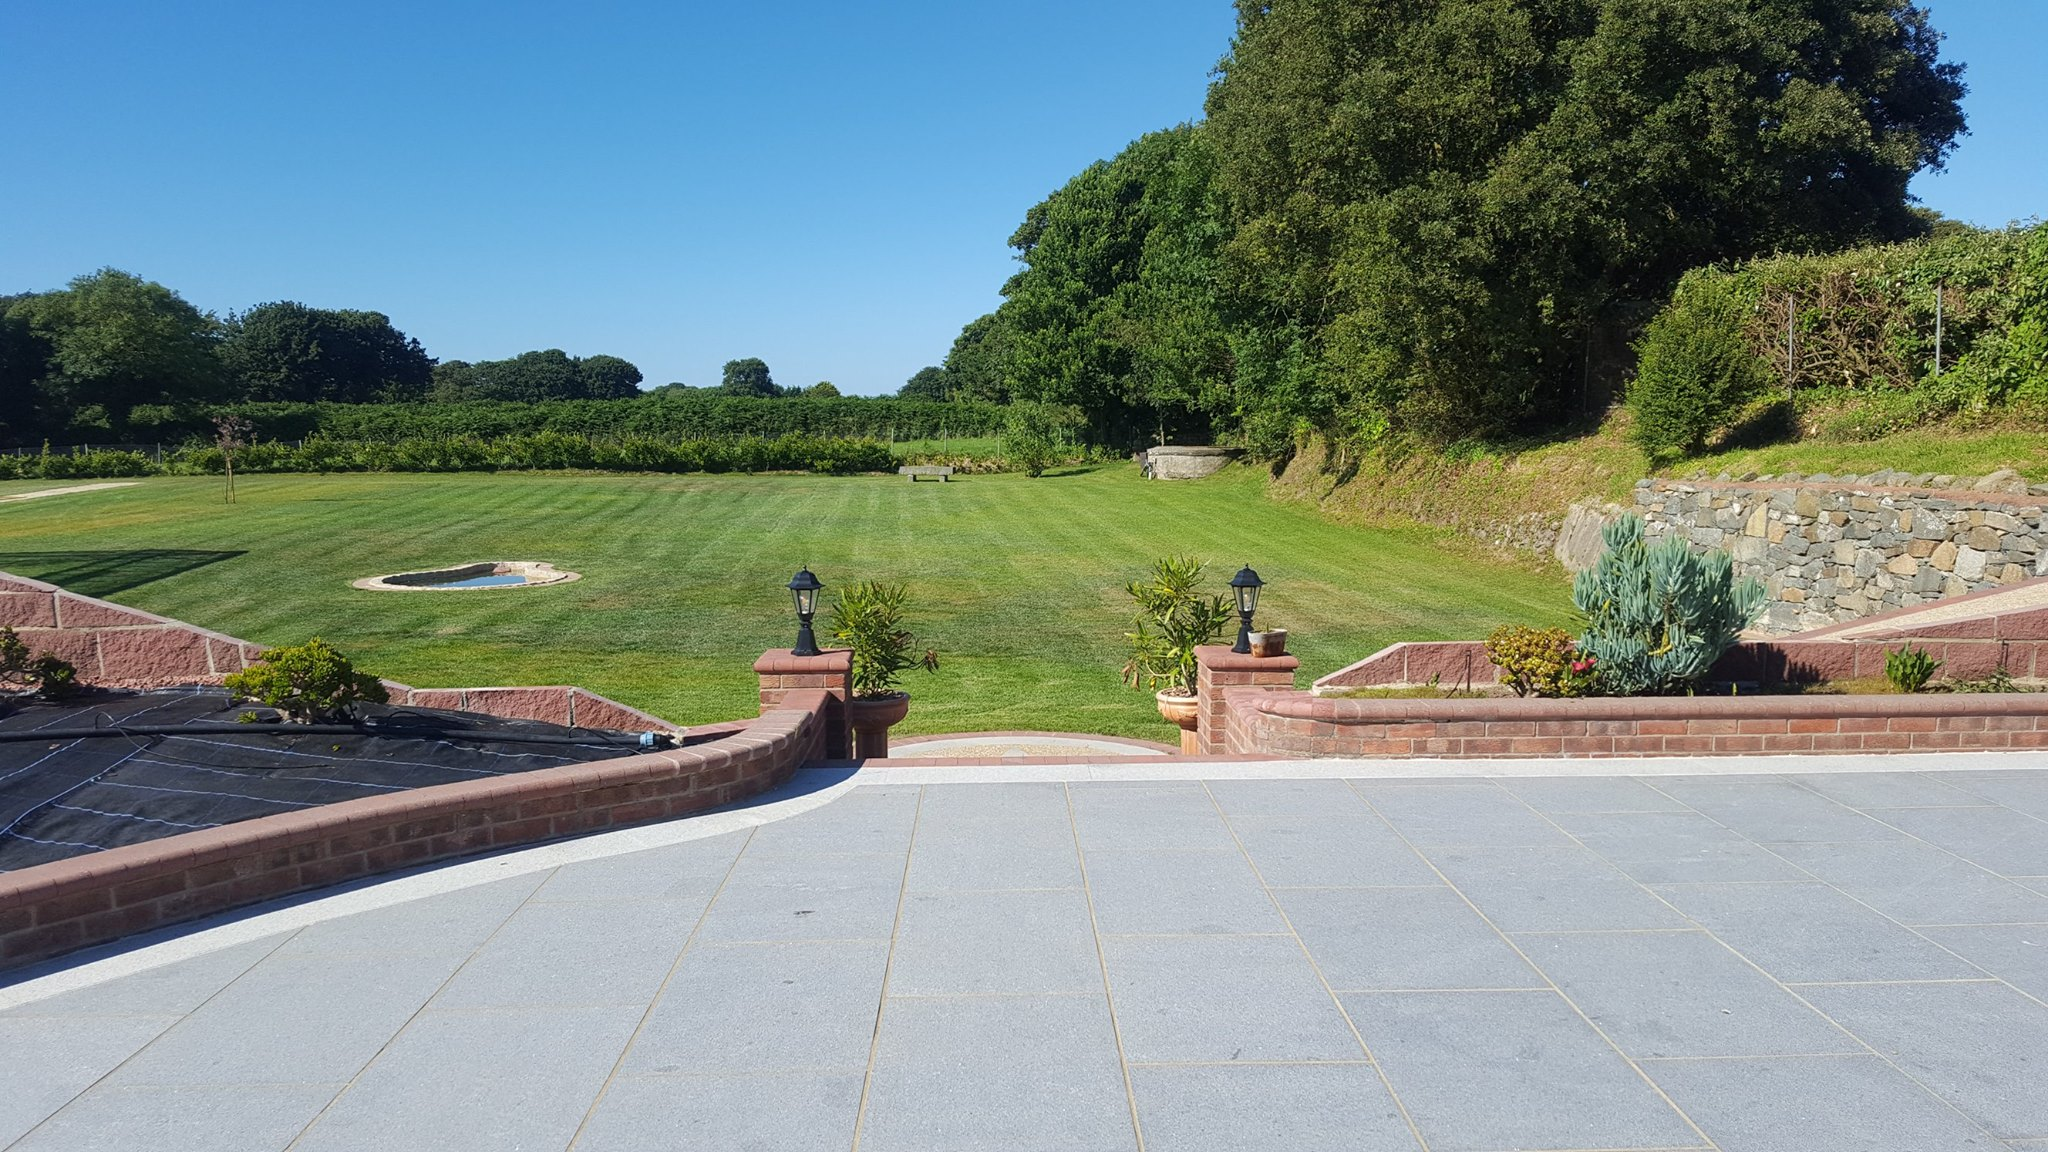 Guernsey landscaping services company. New landscape design and installation that consists of a large patio area with bespoke stone walls.